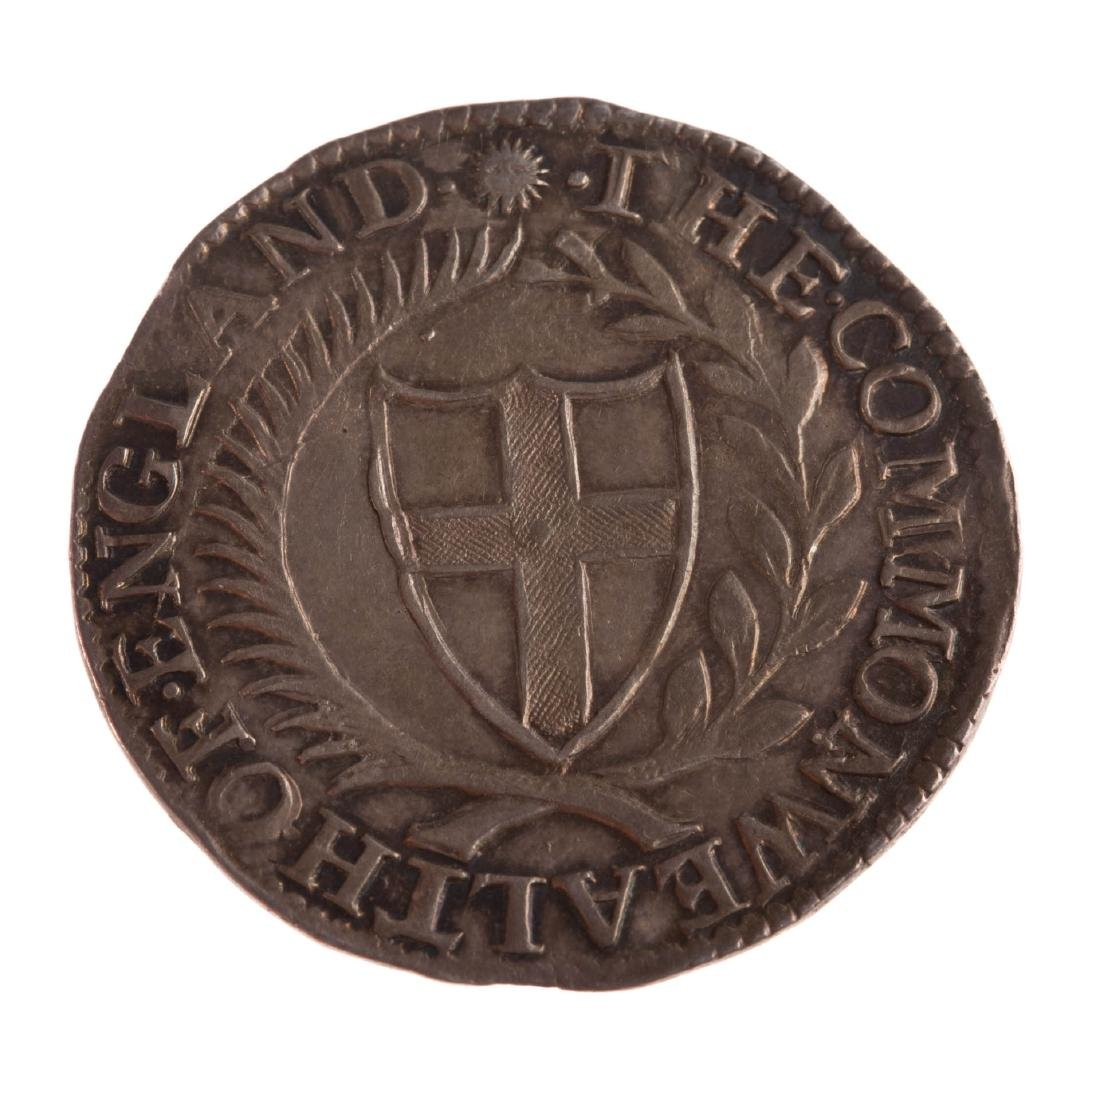 [World] 1651 Shilling - Oliver Cromwell VF/XF - 2